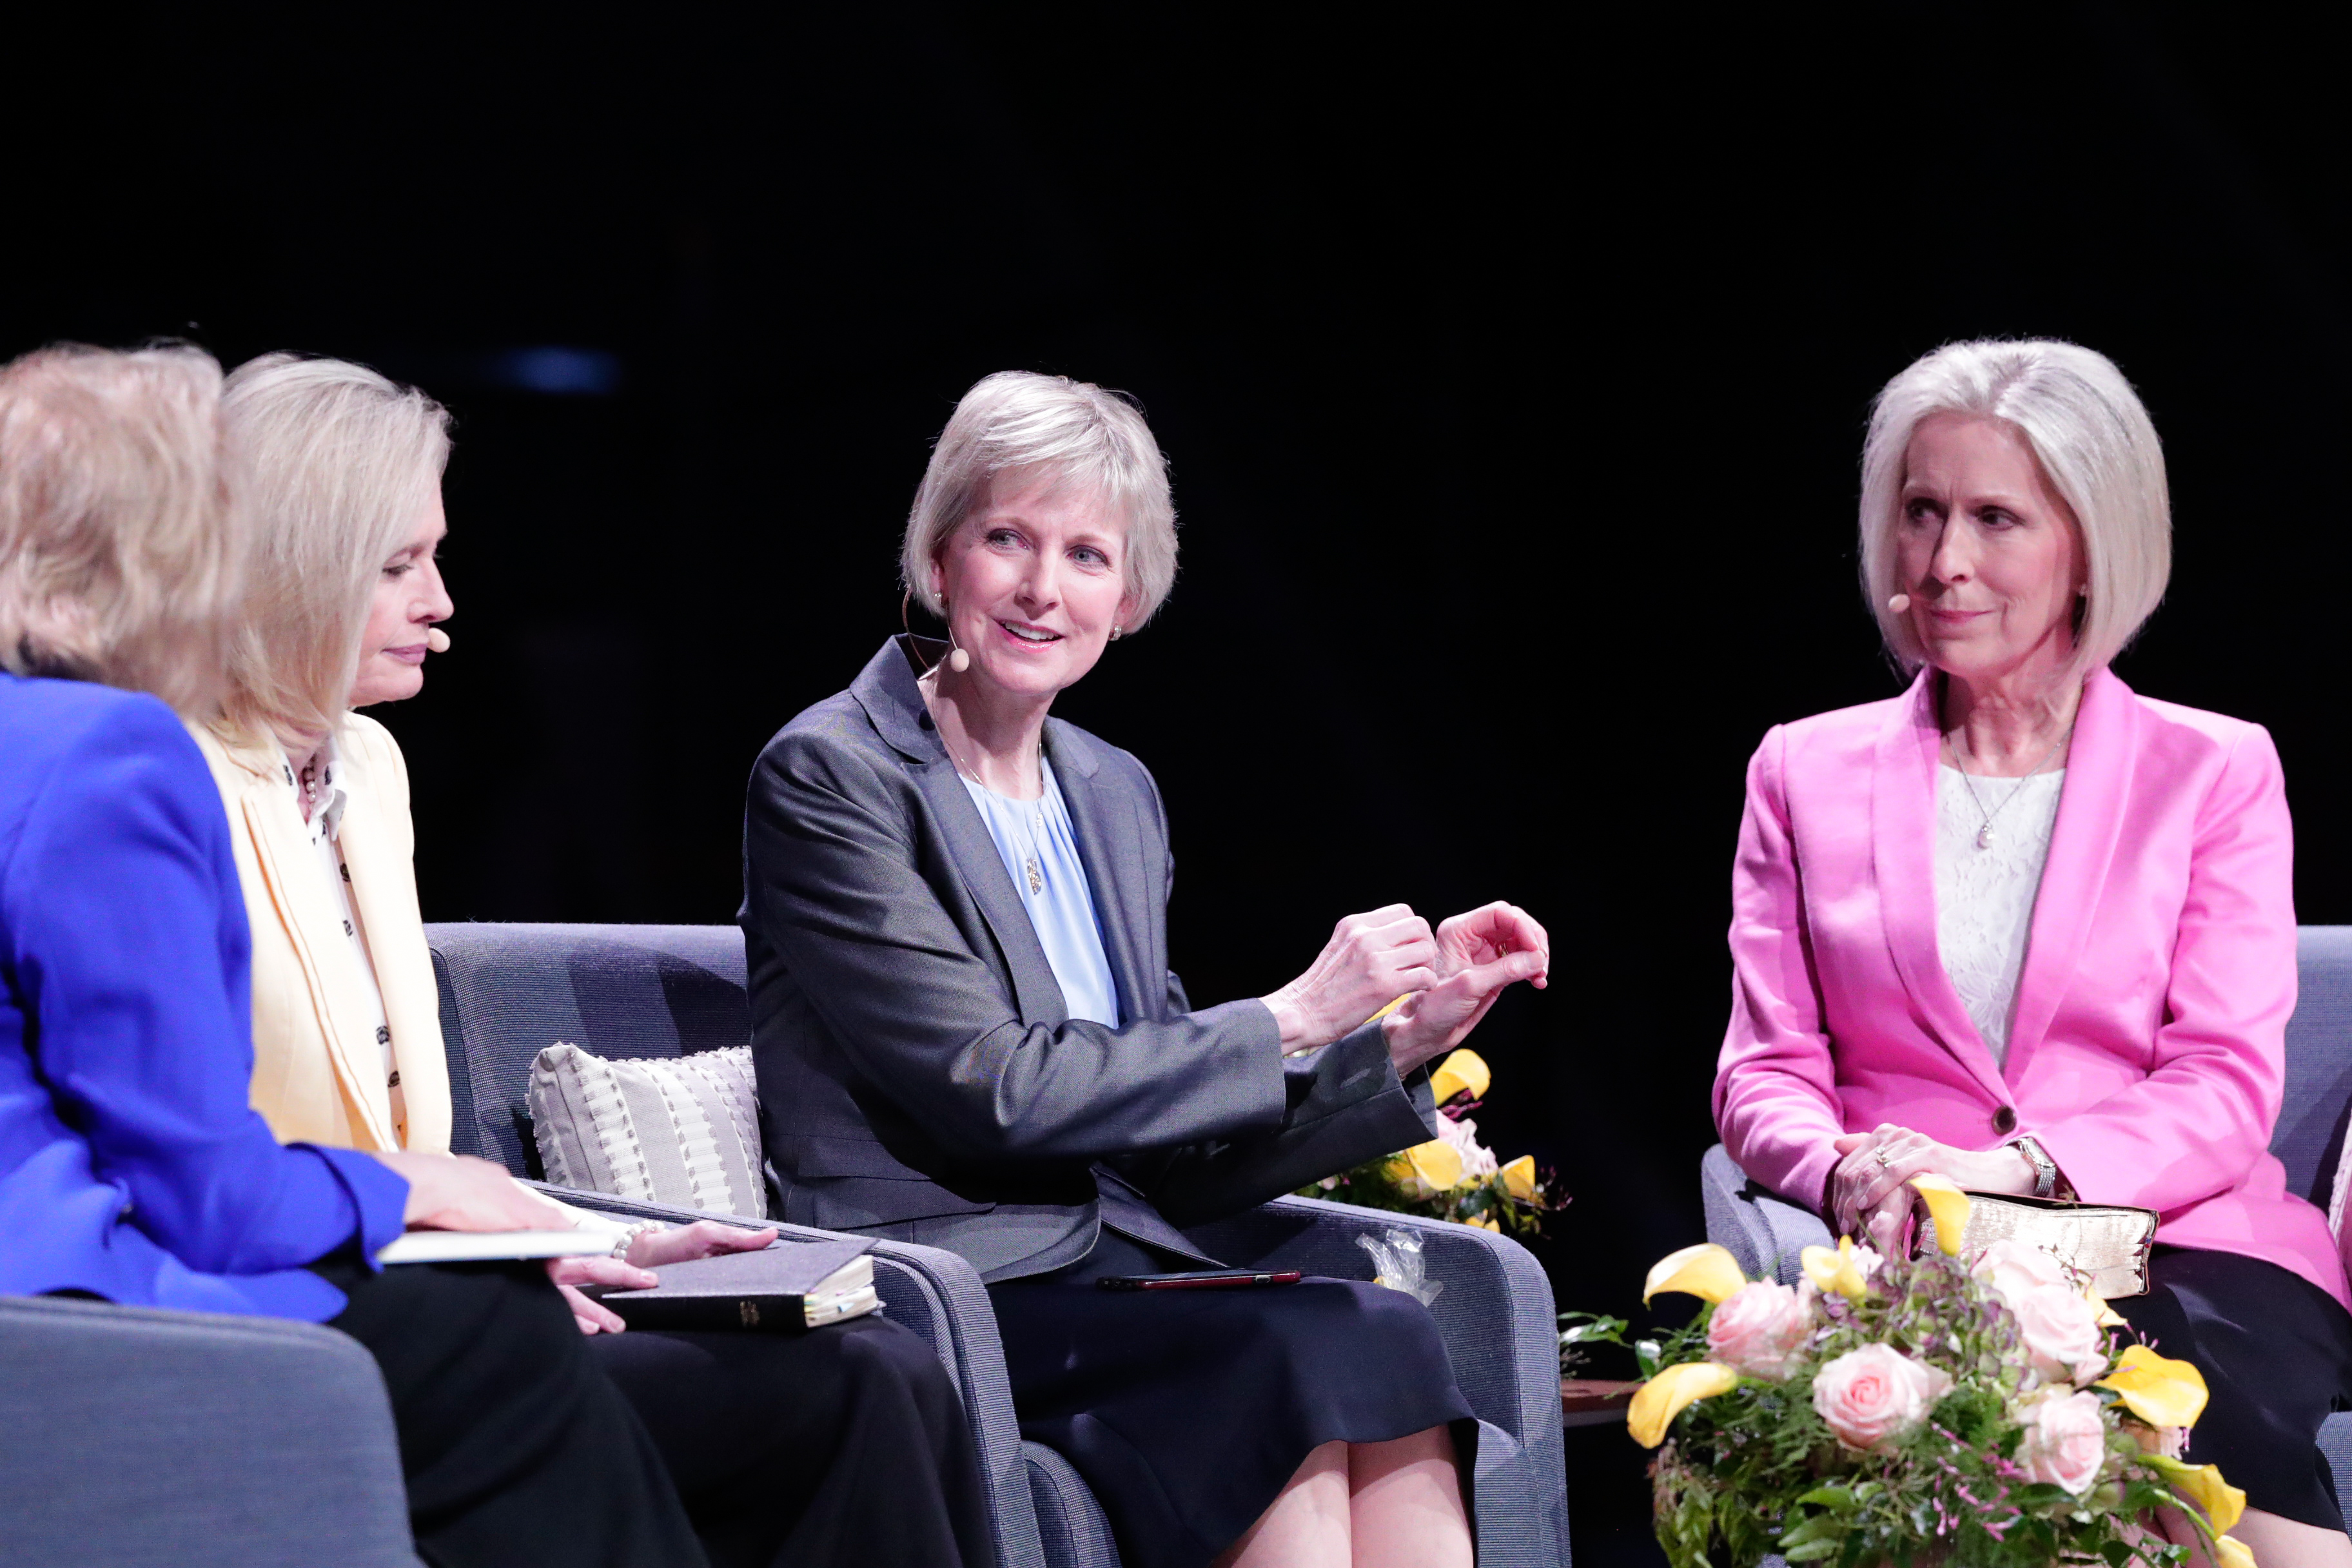 Sister Bonnie H. Cordon, Sister Jean B. Bingham and Sister Joy D. Jones, with Sister Sheri Dew, left, moderating, participate in the first Sister-to-Sister event during the 2019 BYU Women's Conference, held in the Marriott Center at BYU in Provo, Utah, on May 3, 2019.